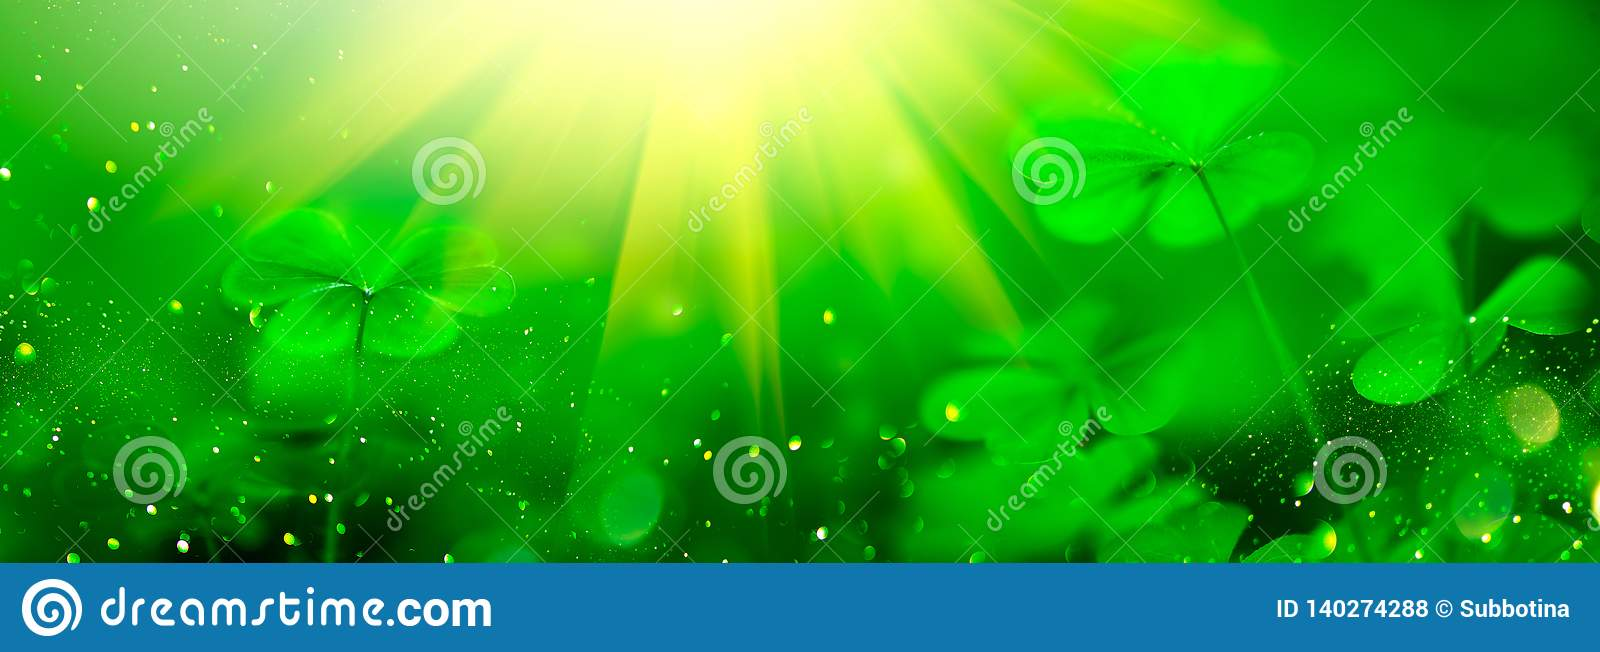 St. Patrick`s Day green blurred background with shamrock leaves. Patrick Day. Abstract border art design